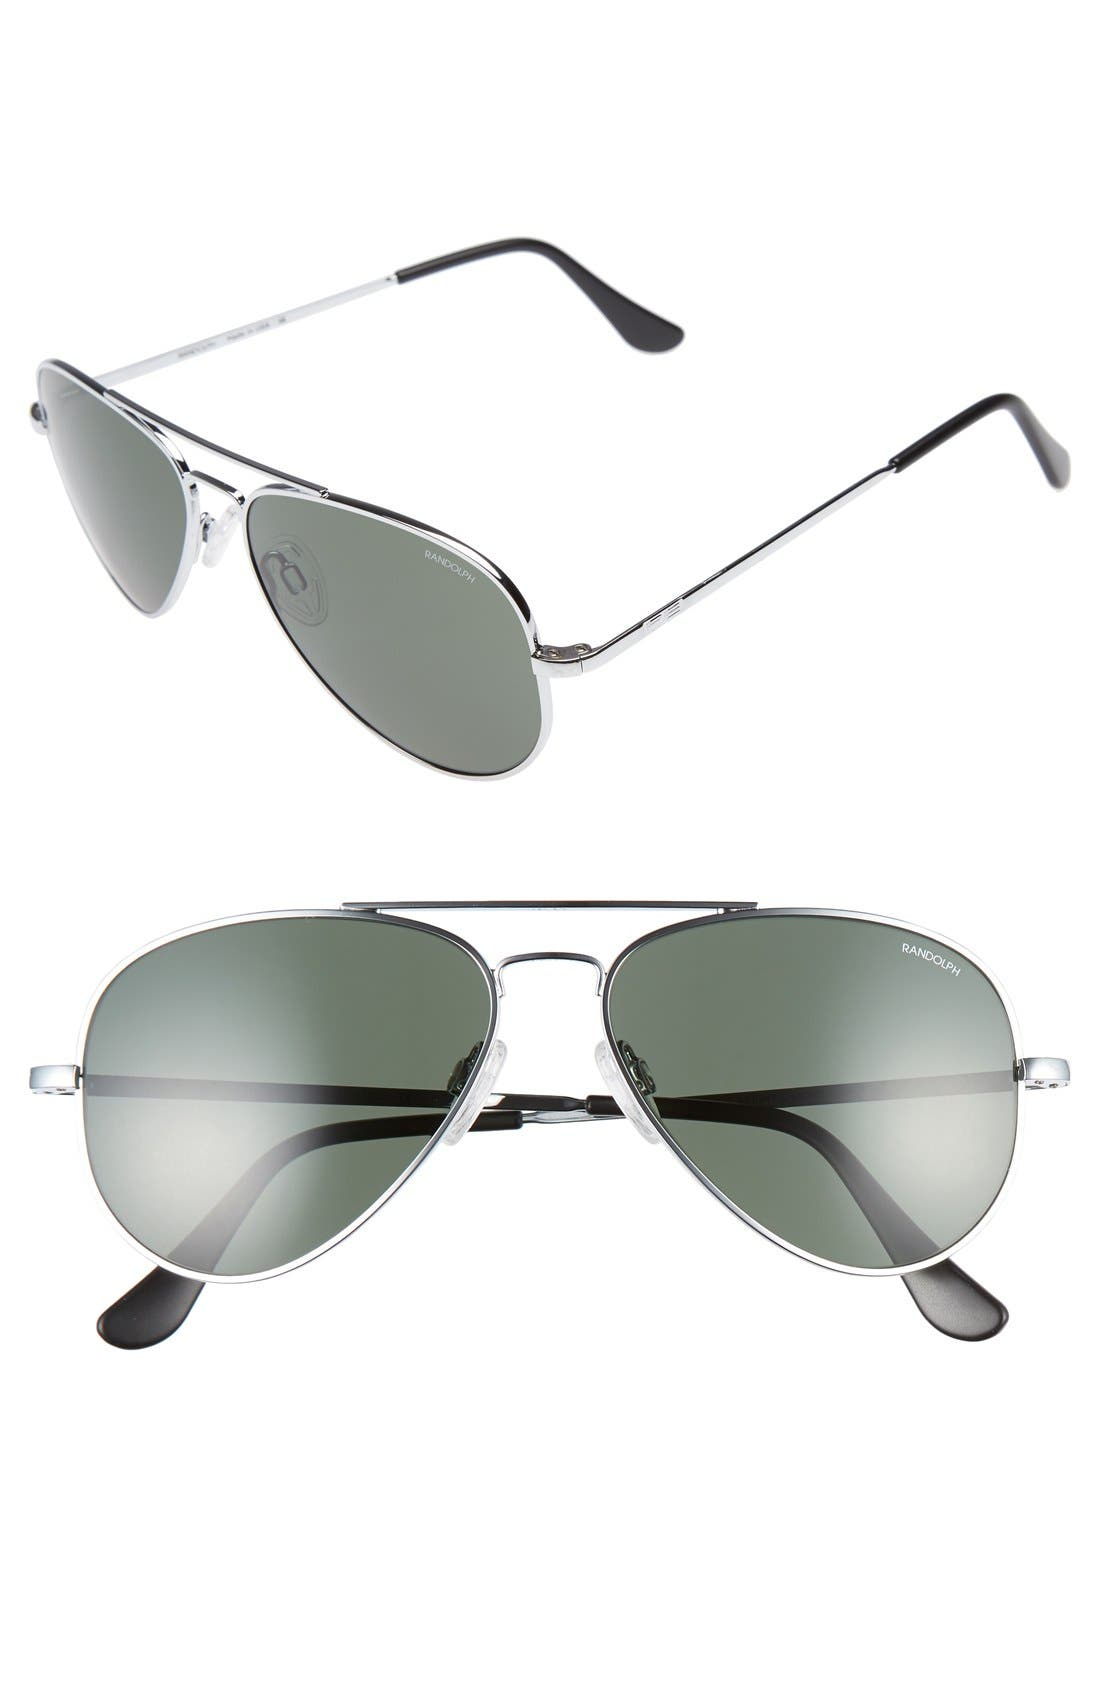 RANDOLPH ENGINEERING Concorde 57mm Aviator Sunglasses